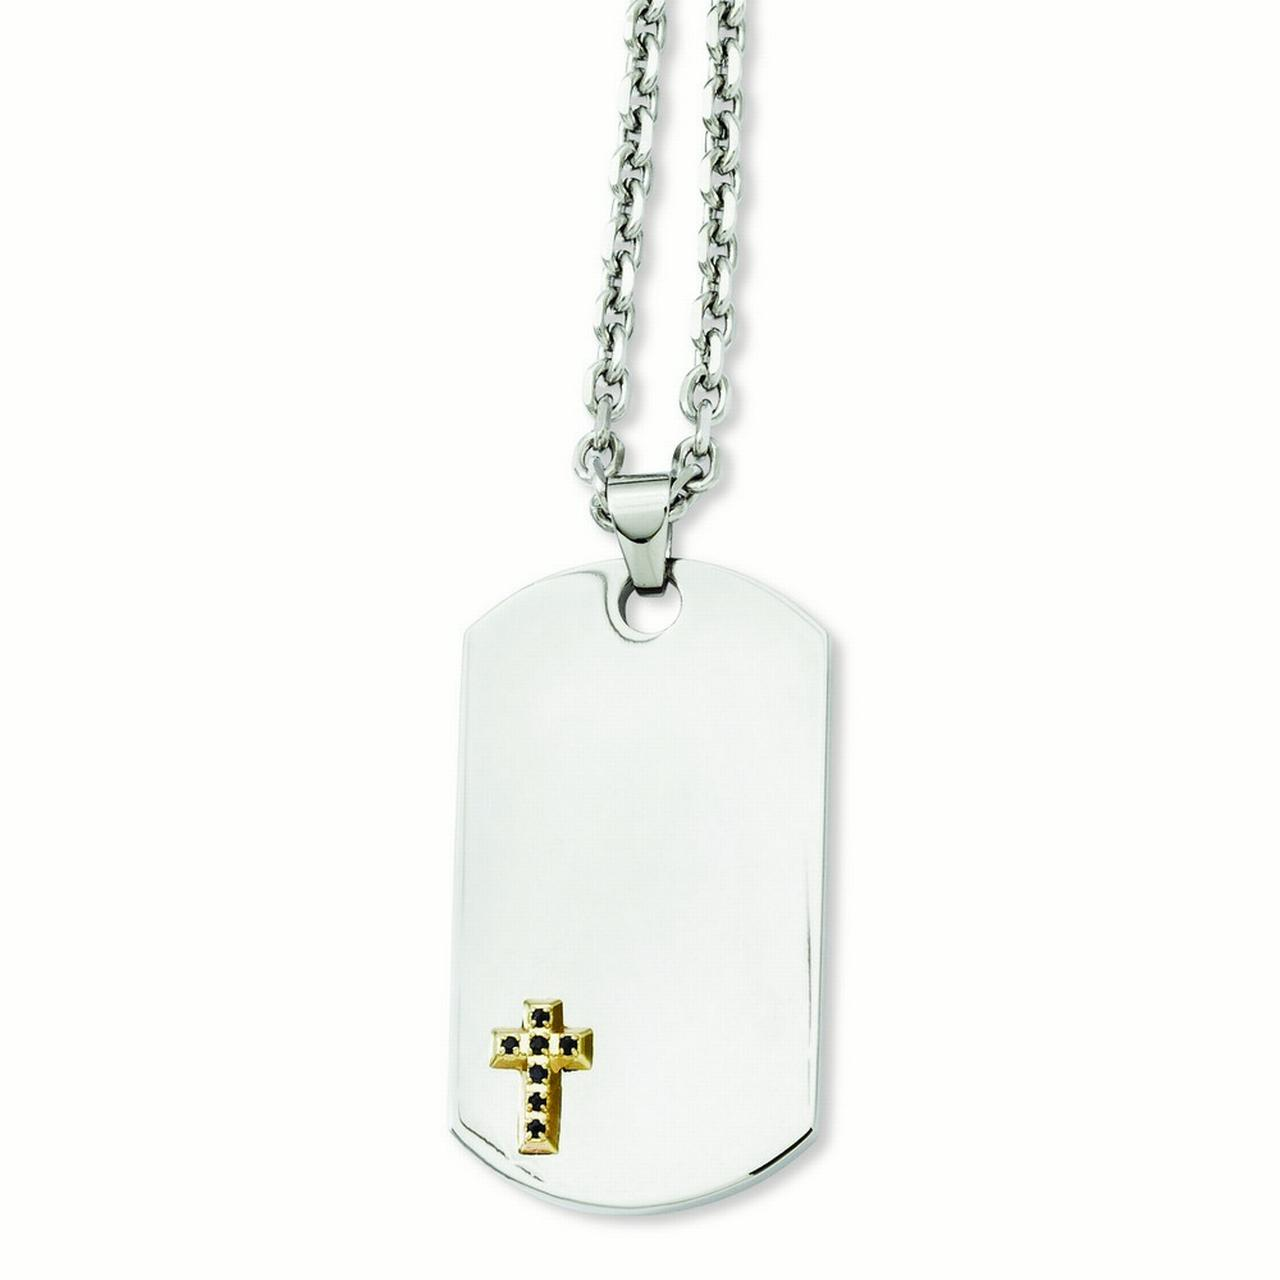 Stainless Steel and 14k With Sapphires Cross Dog Tag Pendant 24inch Necklace 24 Inch by